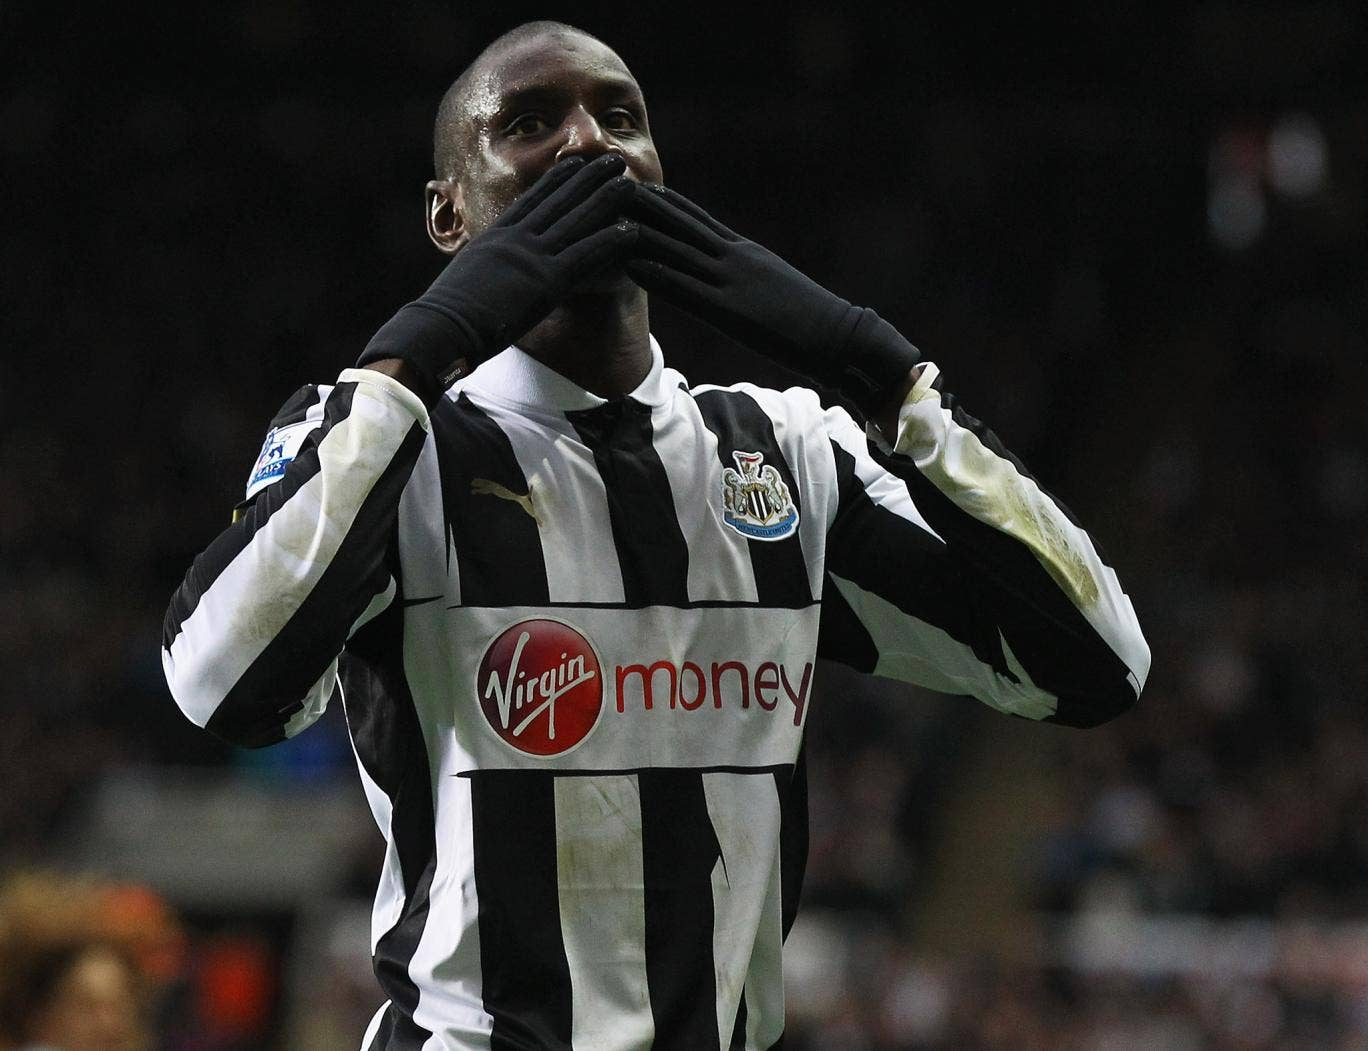 Chelsea have pulled out of talks for Newcastle's Demba Ba, who wants £80,000-per-week deal